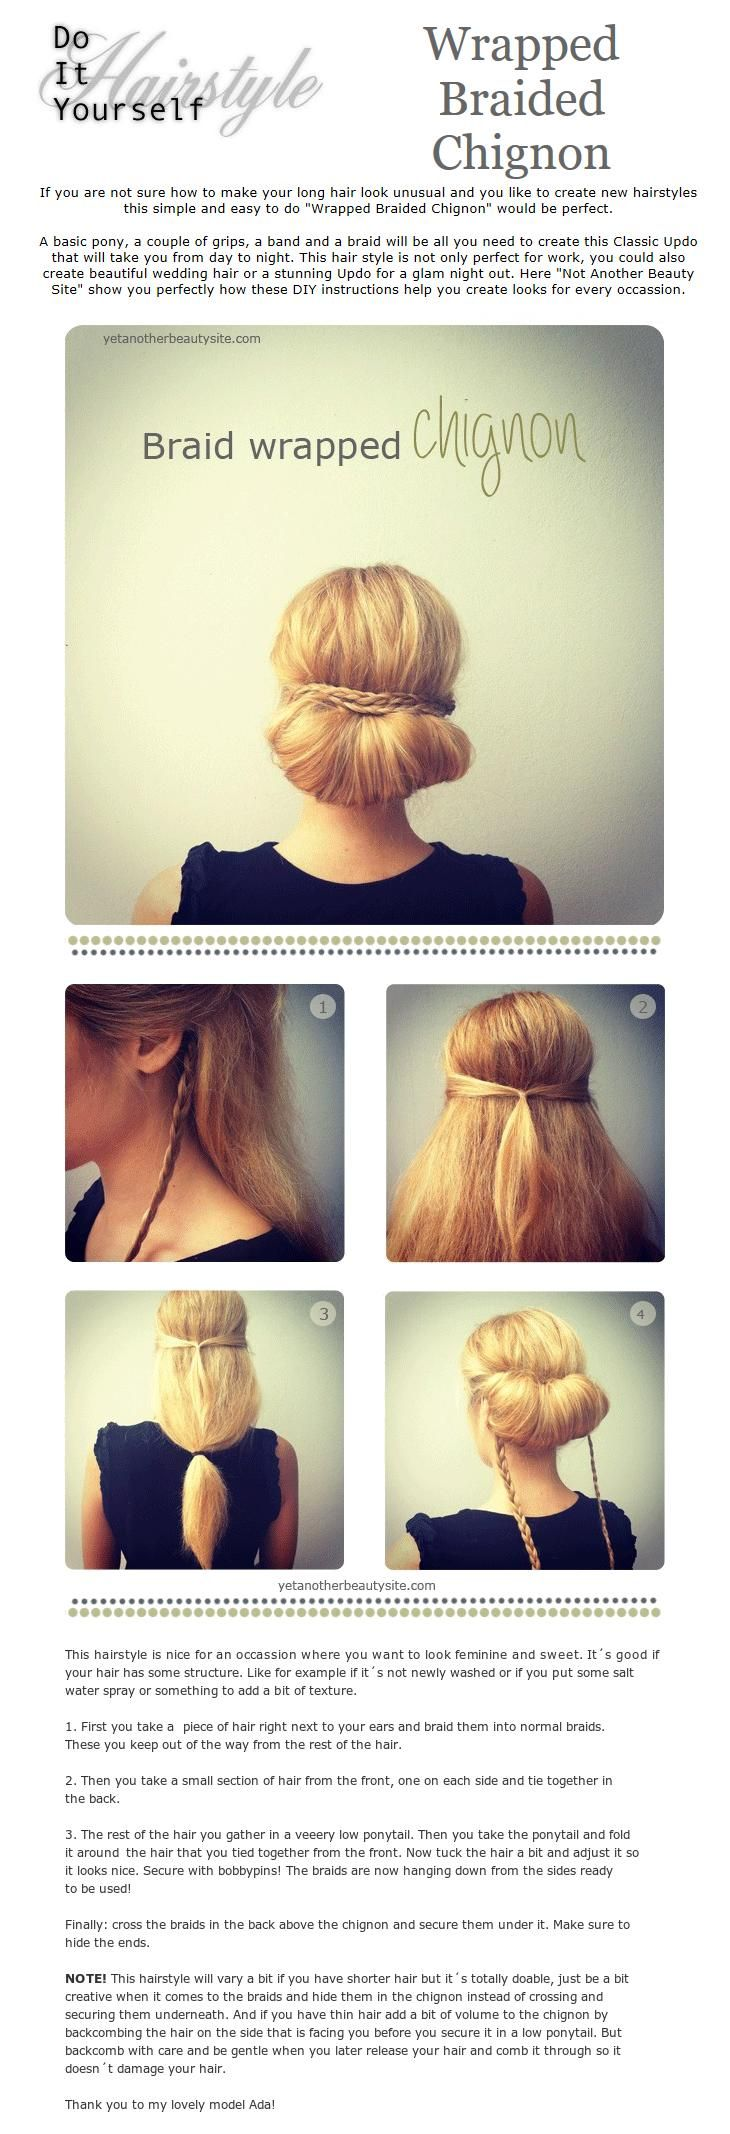 Diy hairstyles the wrapped braided chignon great tutorial from yet